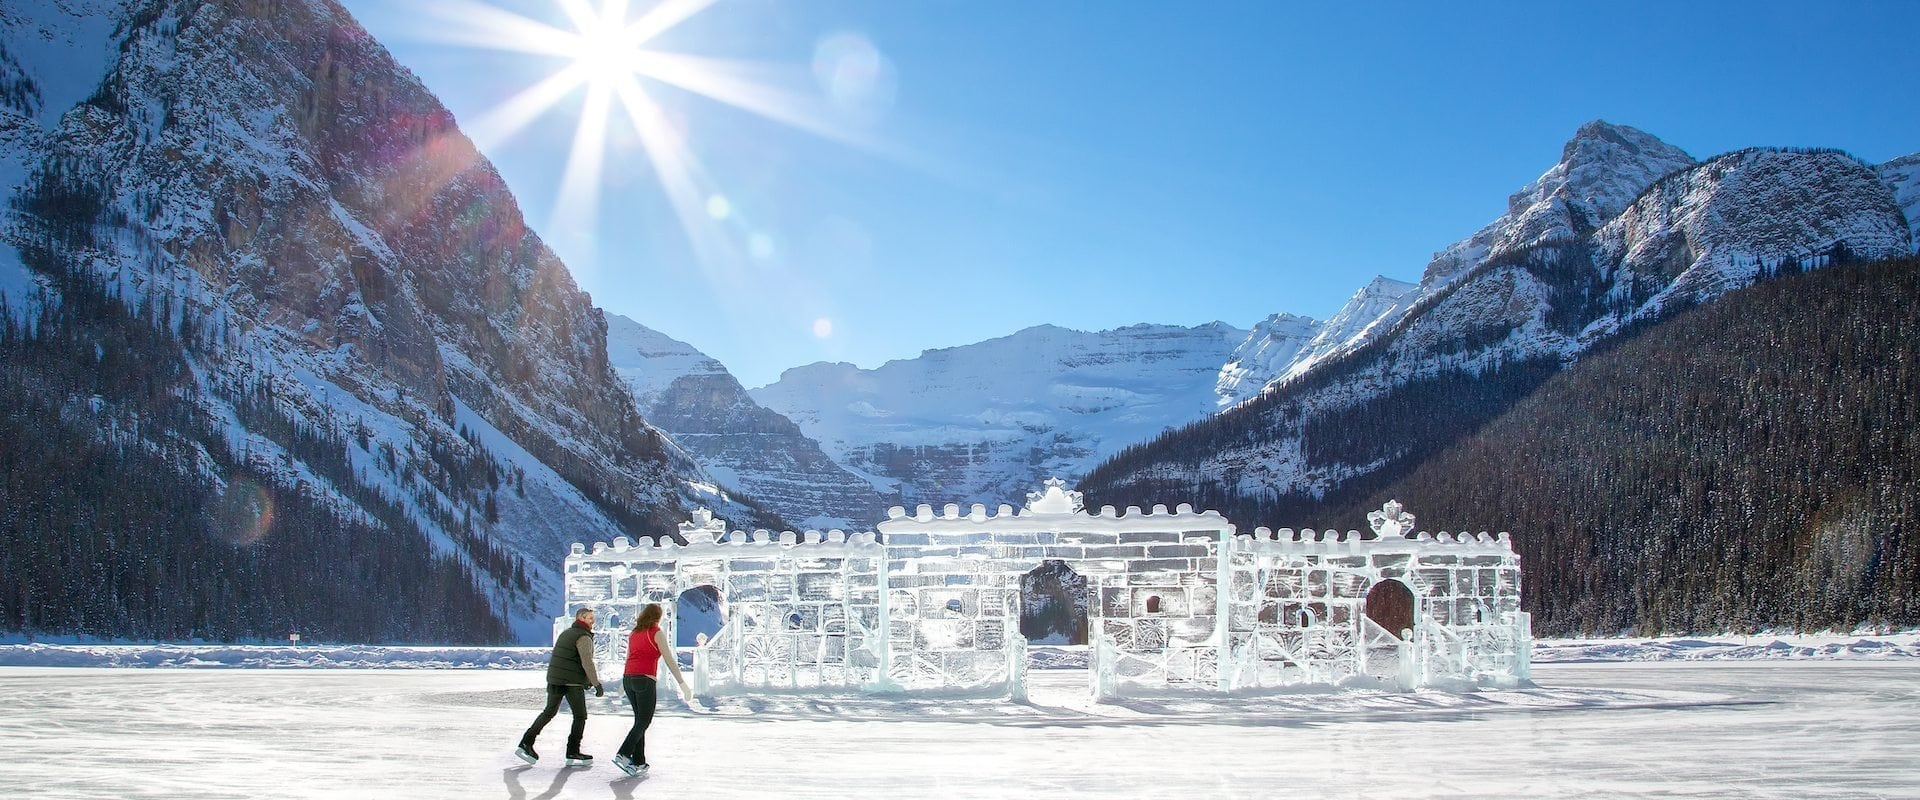 Ice skate at Lake Louise on a full-day tour with Discover Banff Tours